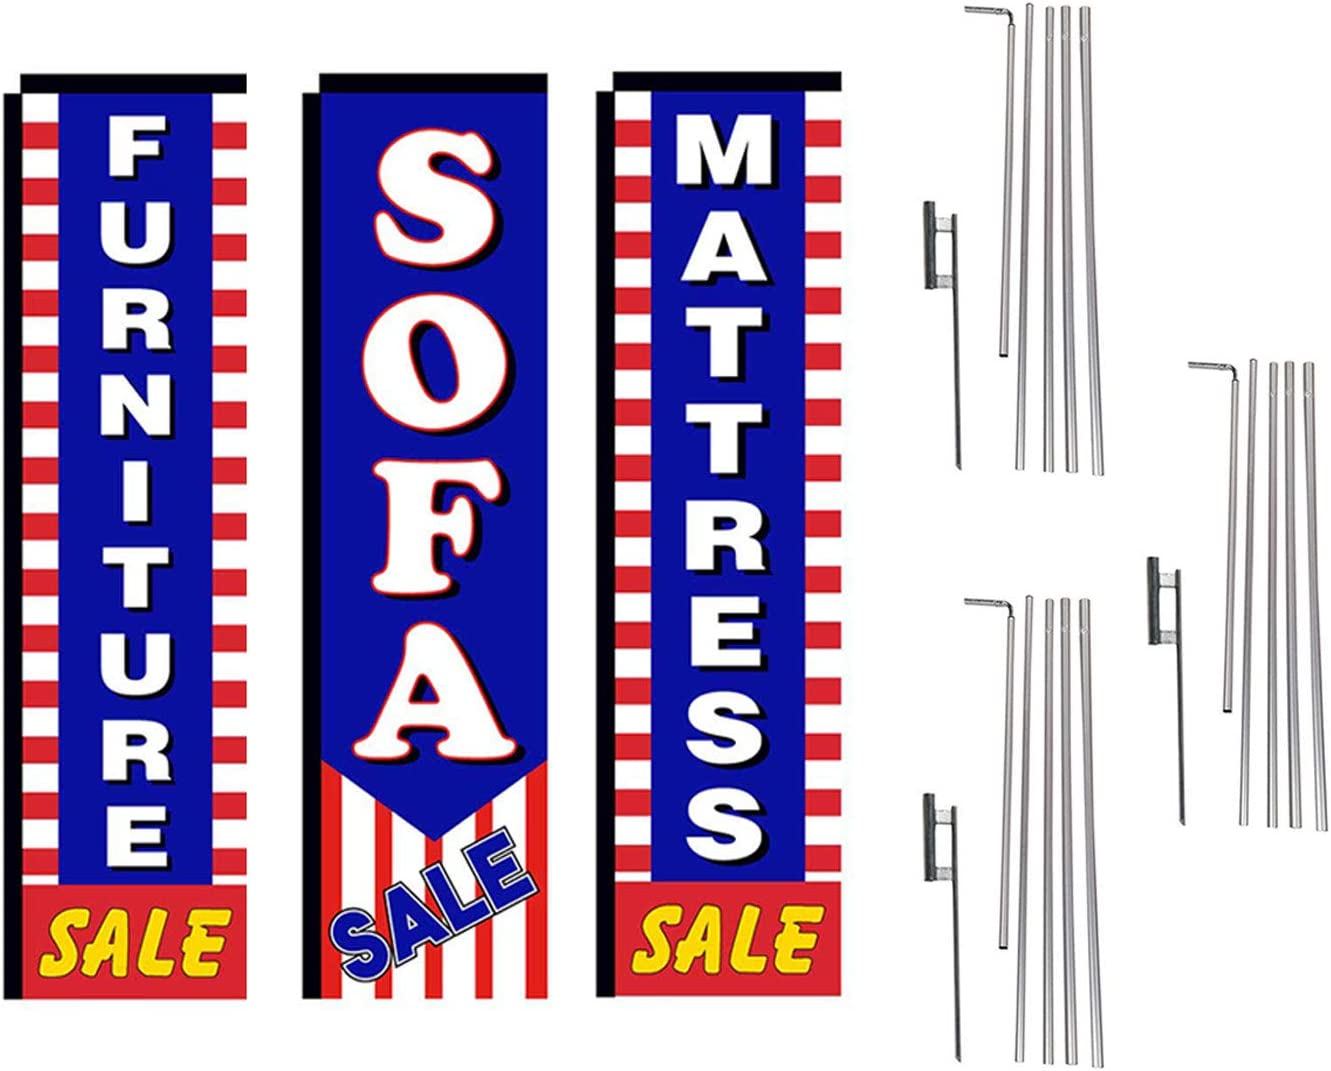 Mattress and Furniture Outlet Advertising Package of 3 Rectangle Feather Banner Flag Kits